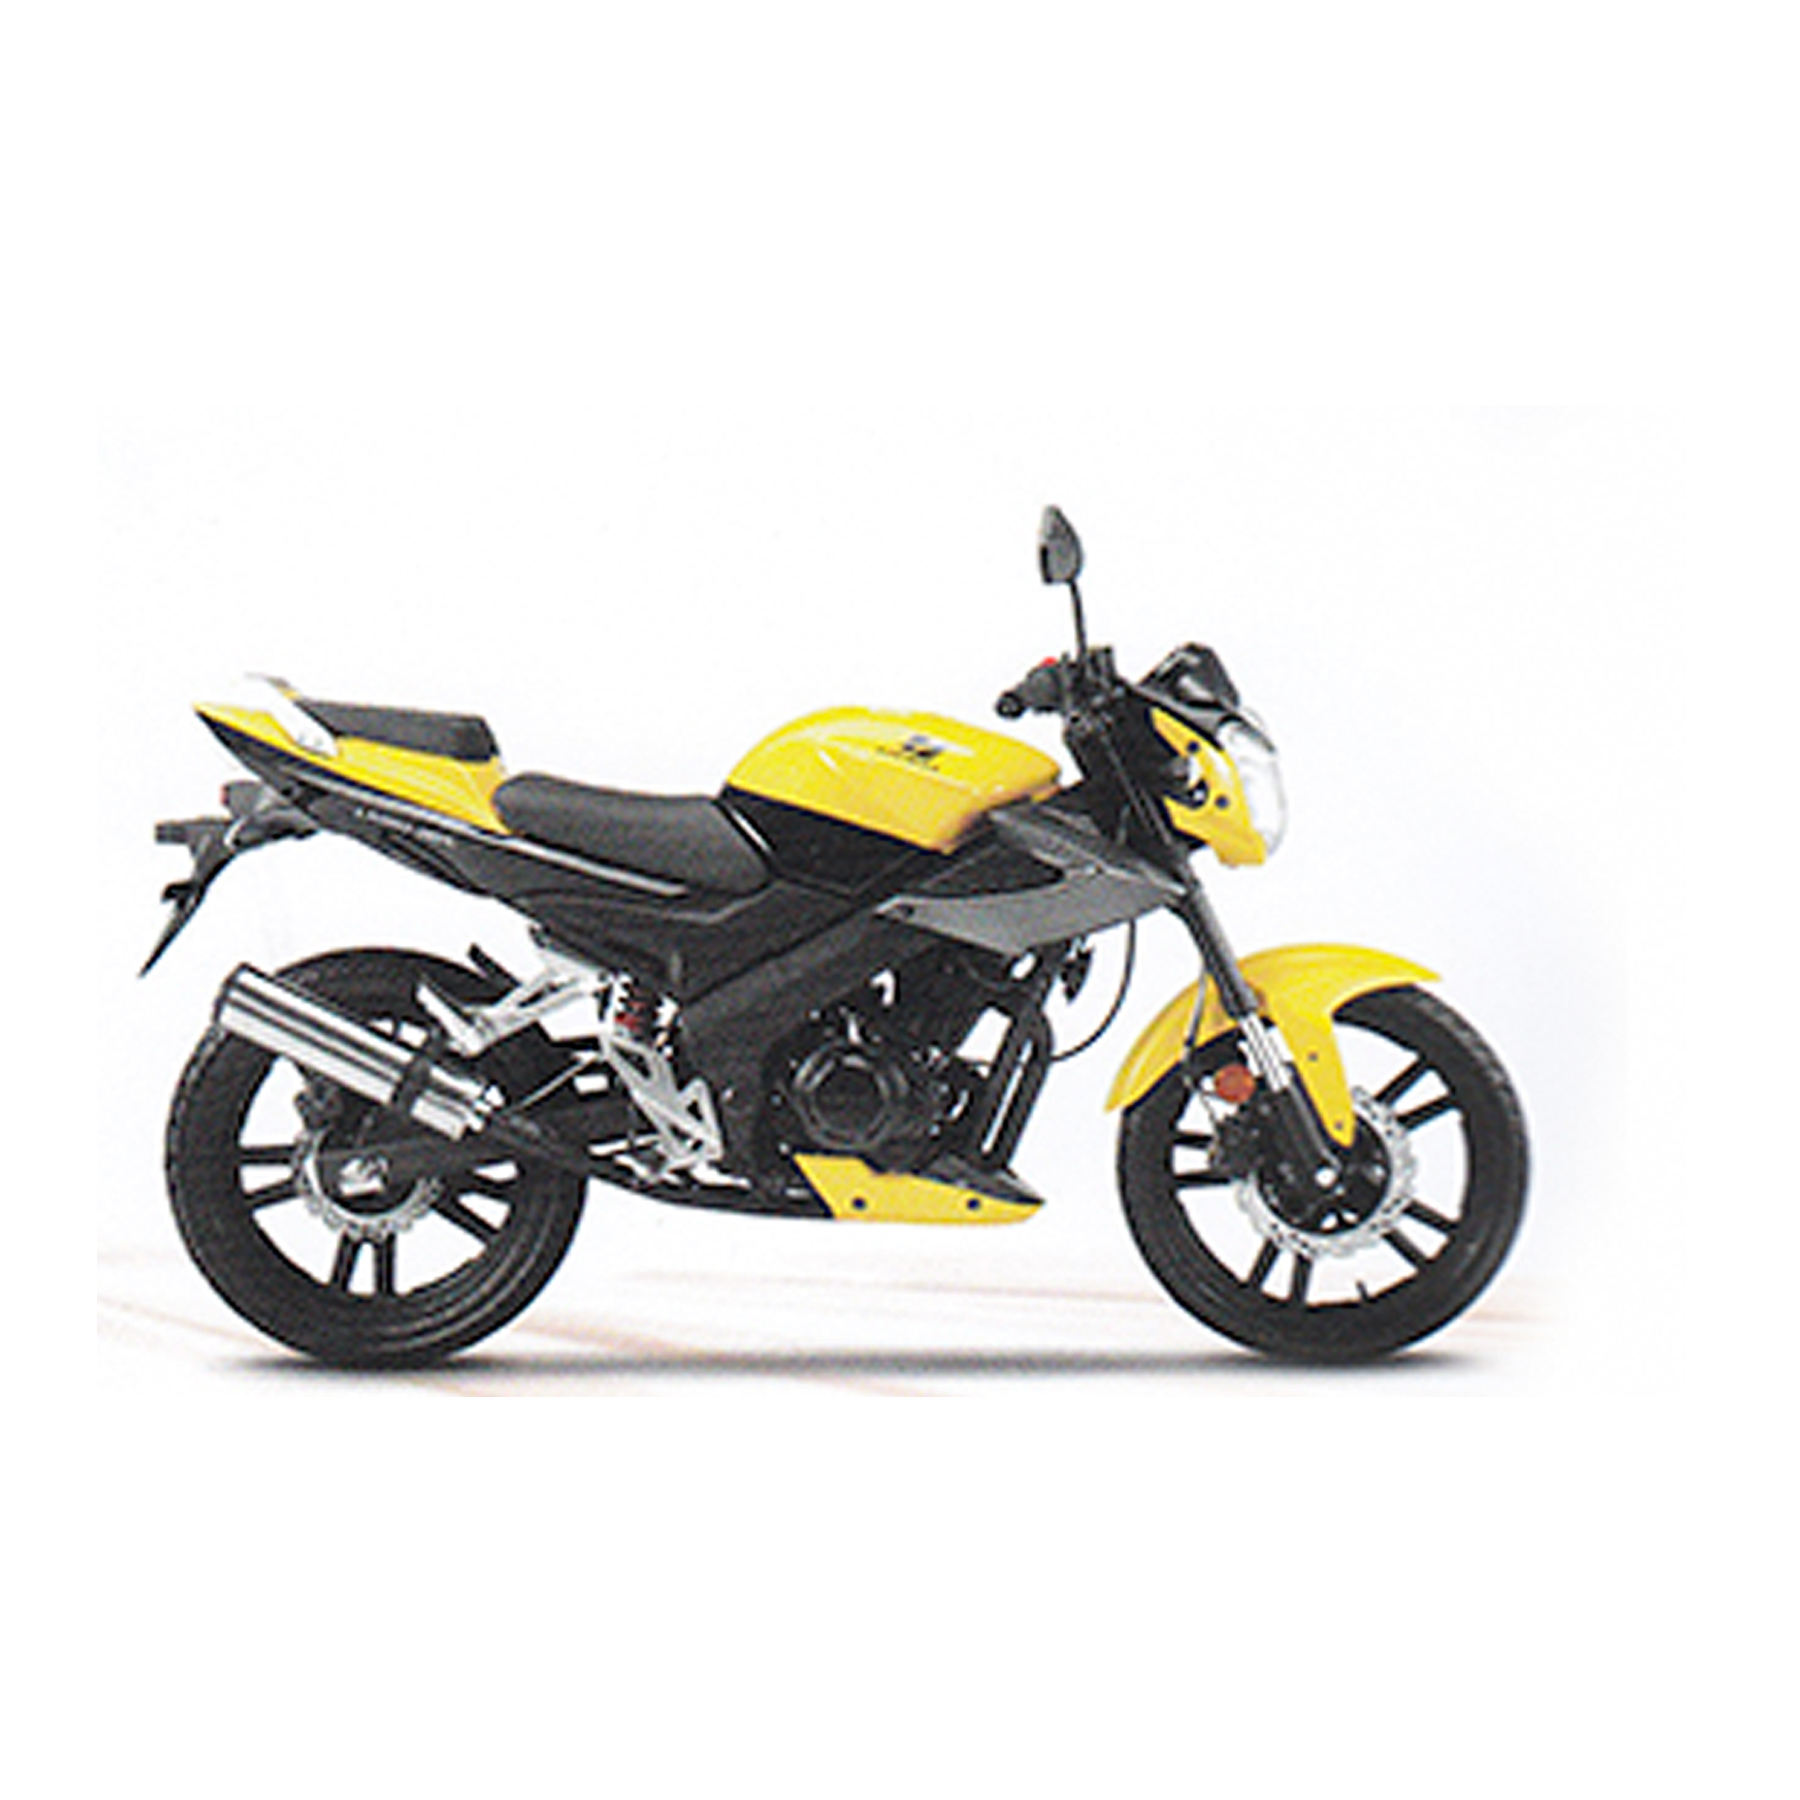 Motorcycle Loncin LX200-3 Spitzer